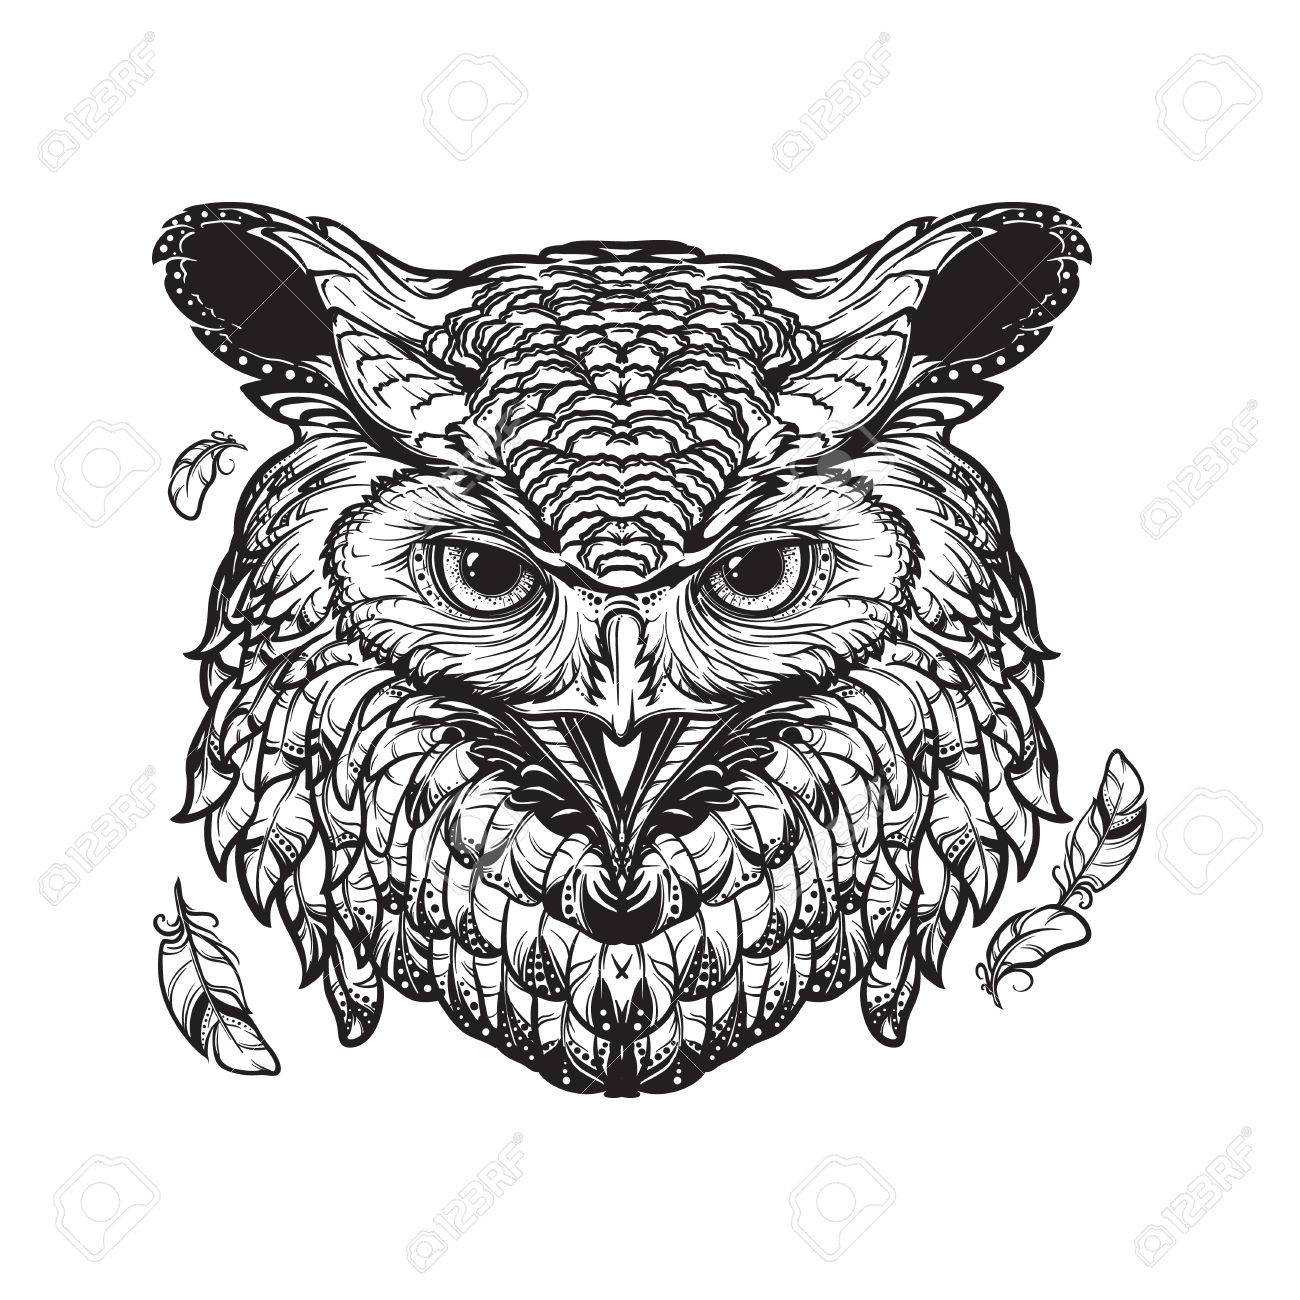 1300x1300 Beautiful Detailed Illustration Of An Owl Head In Frontal View